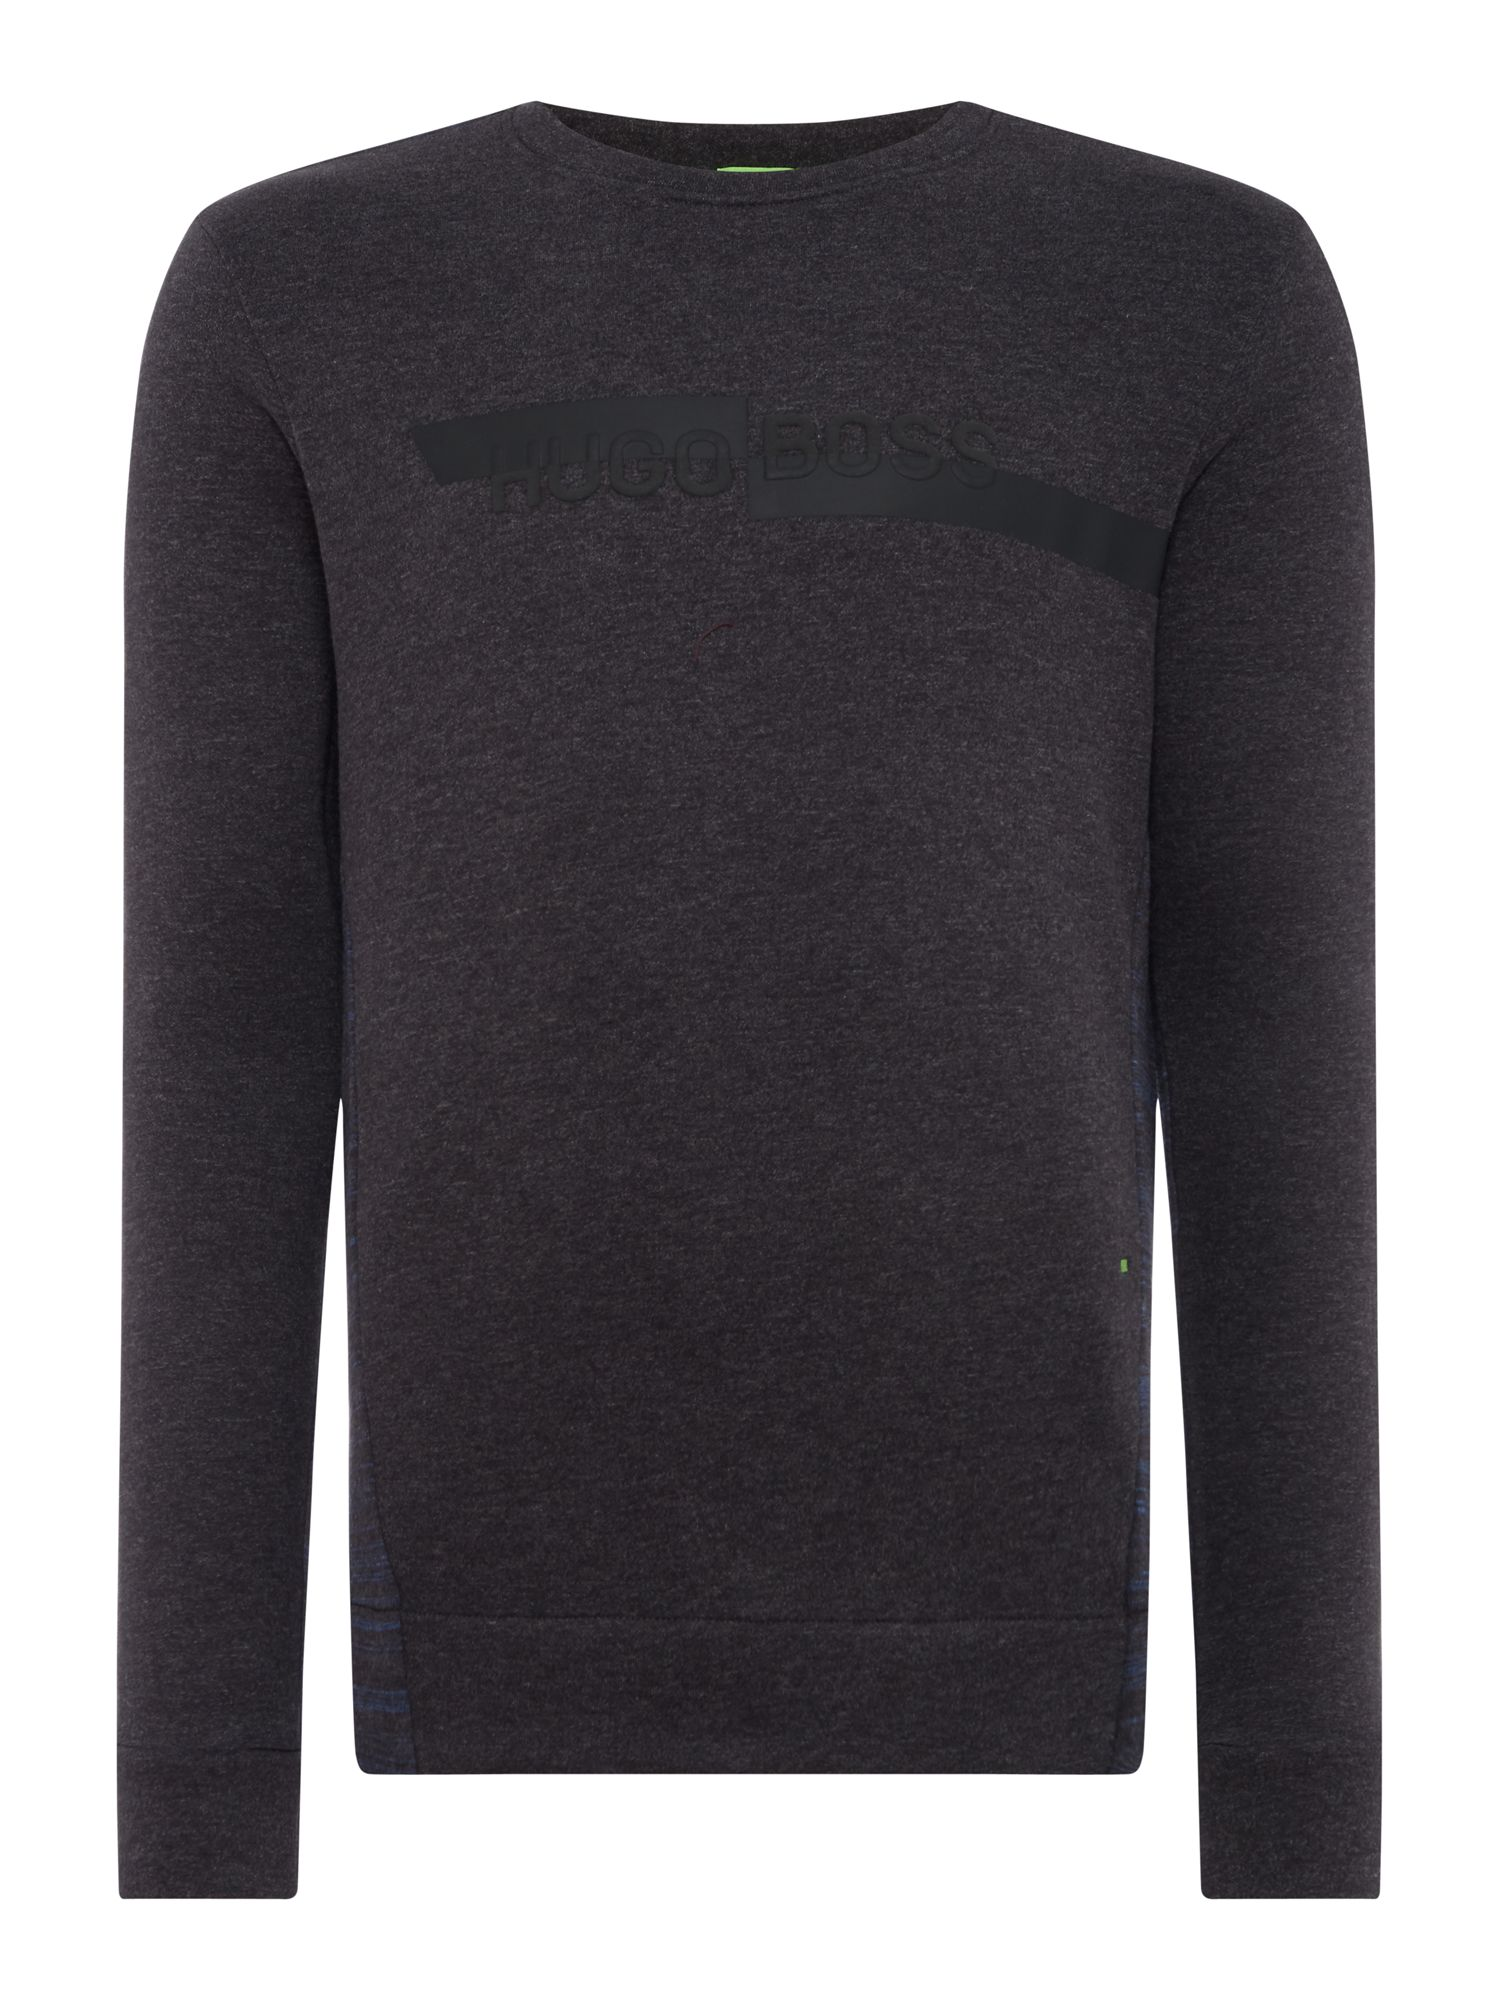 Men's Hugo Boss Salbo 2 Cashmere crew neck sweat, Charcoal